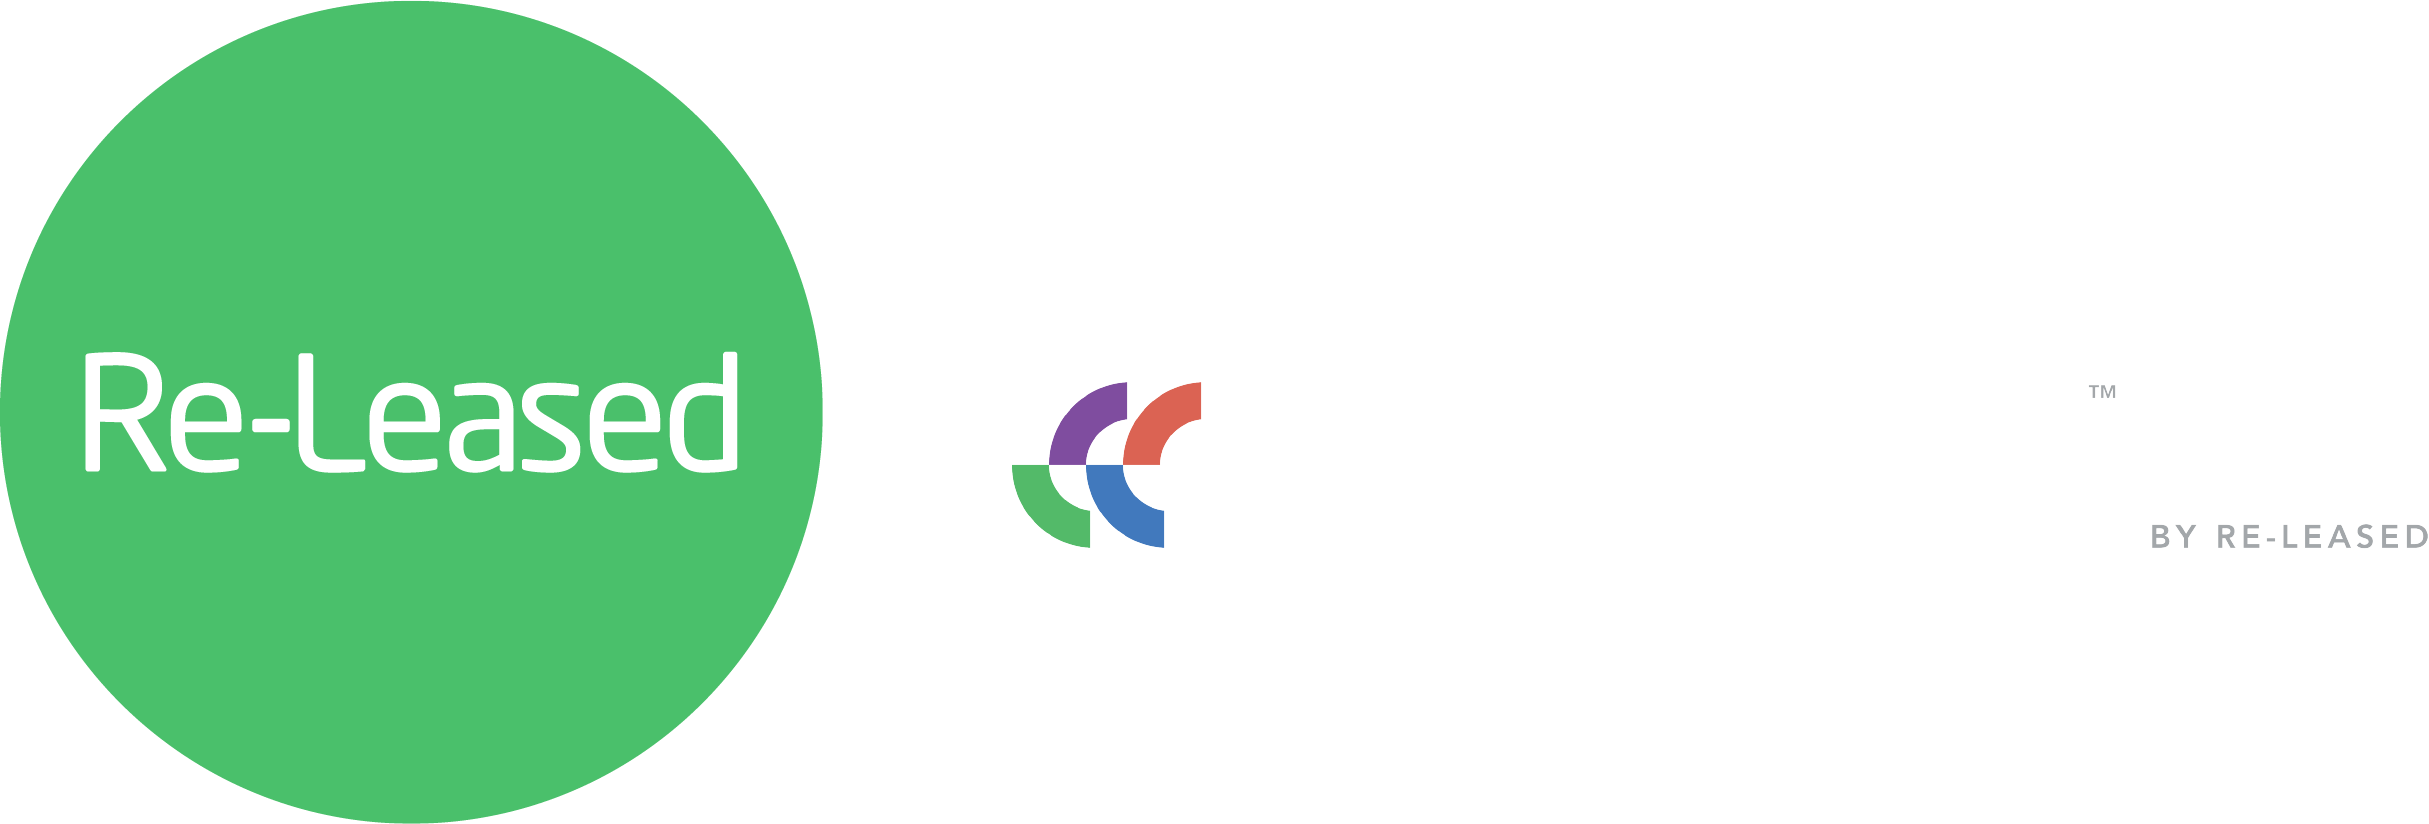 Re-Leased&CrediaLogo (1)-1